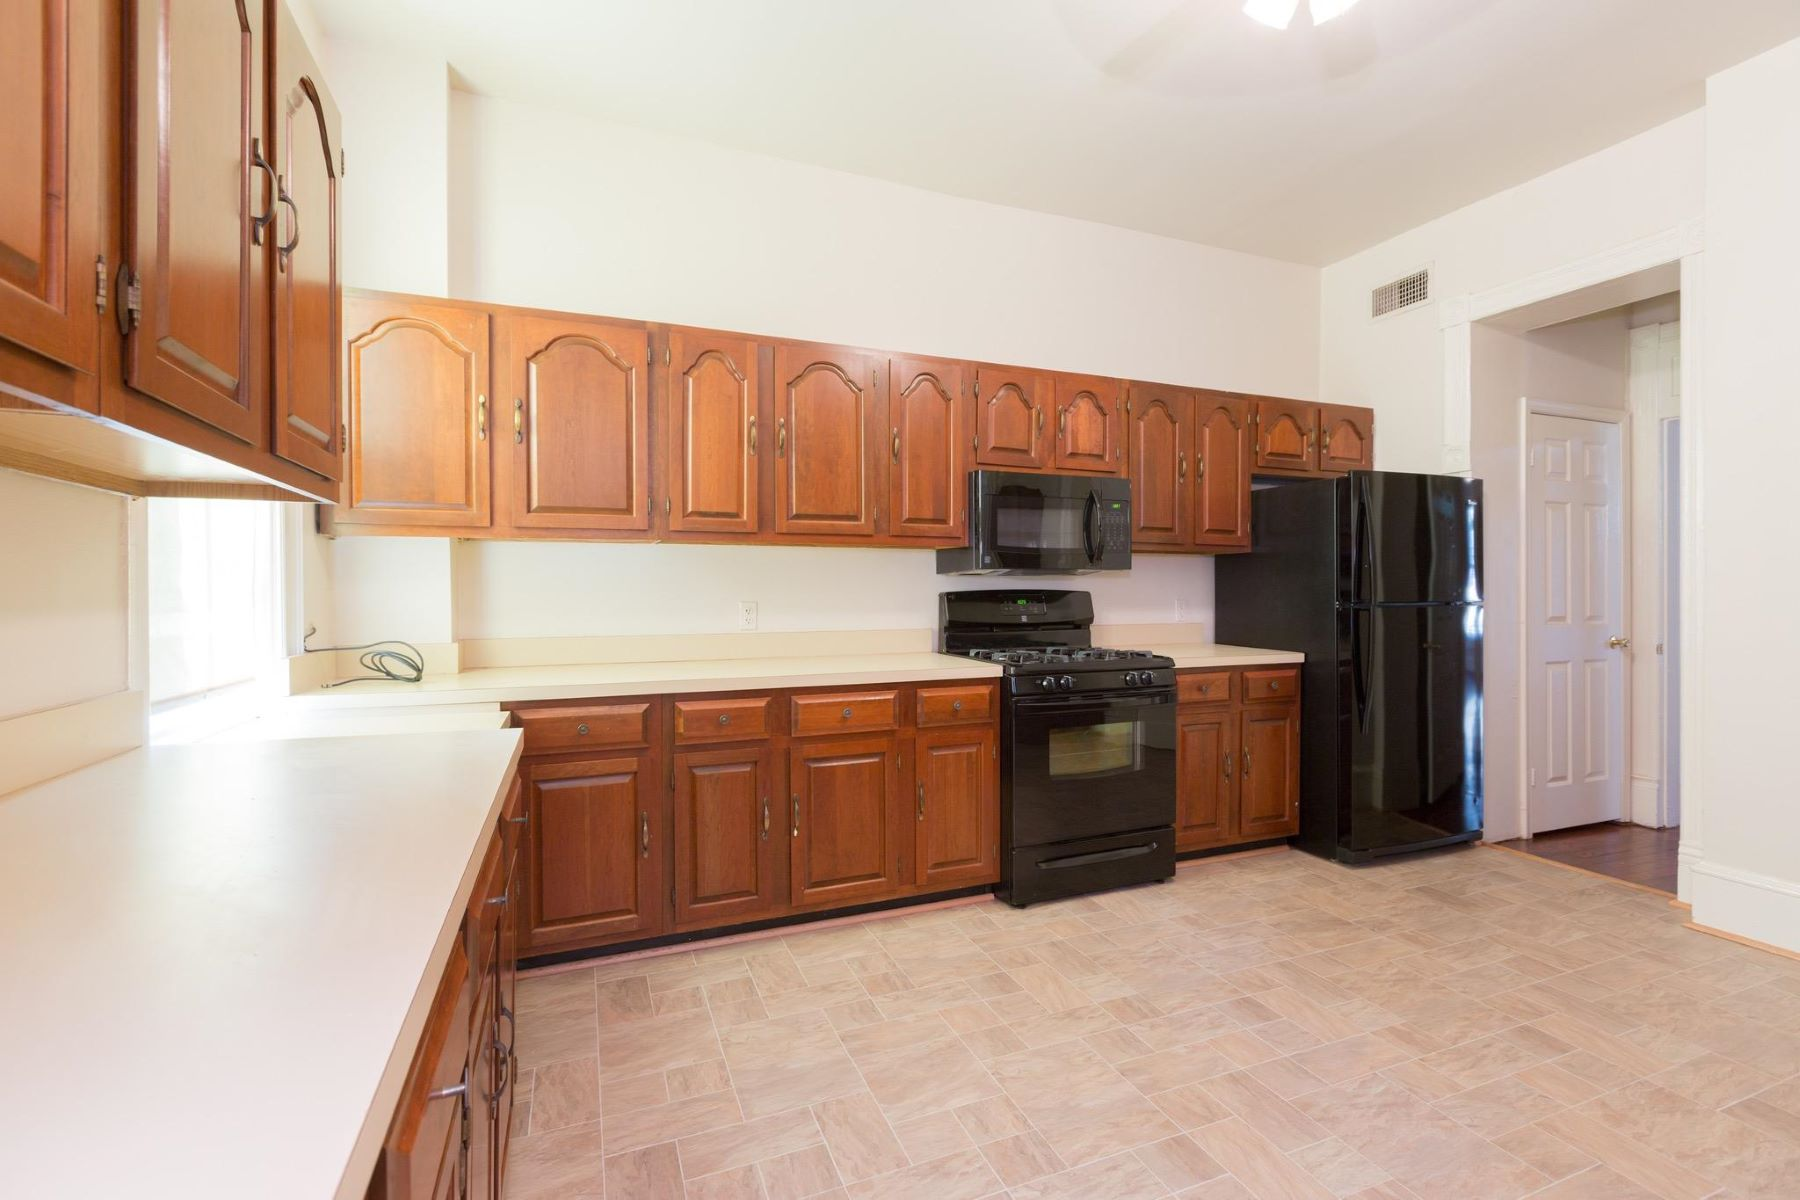 Additional photo for property listing at 2902 O ST NW 2902 O ST NW Washington, District Of Columbia 20007 United States